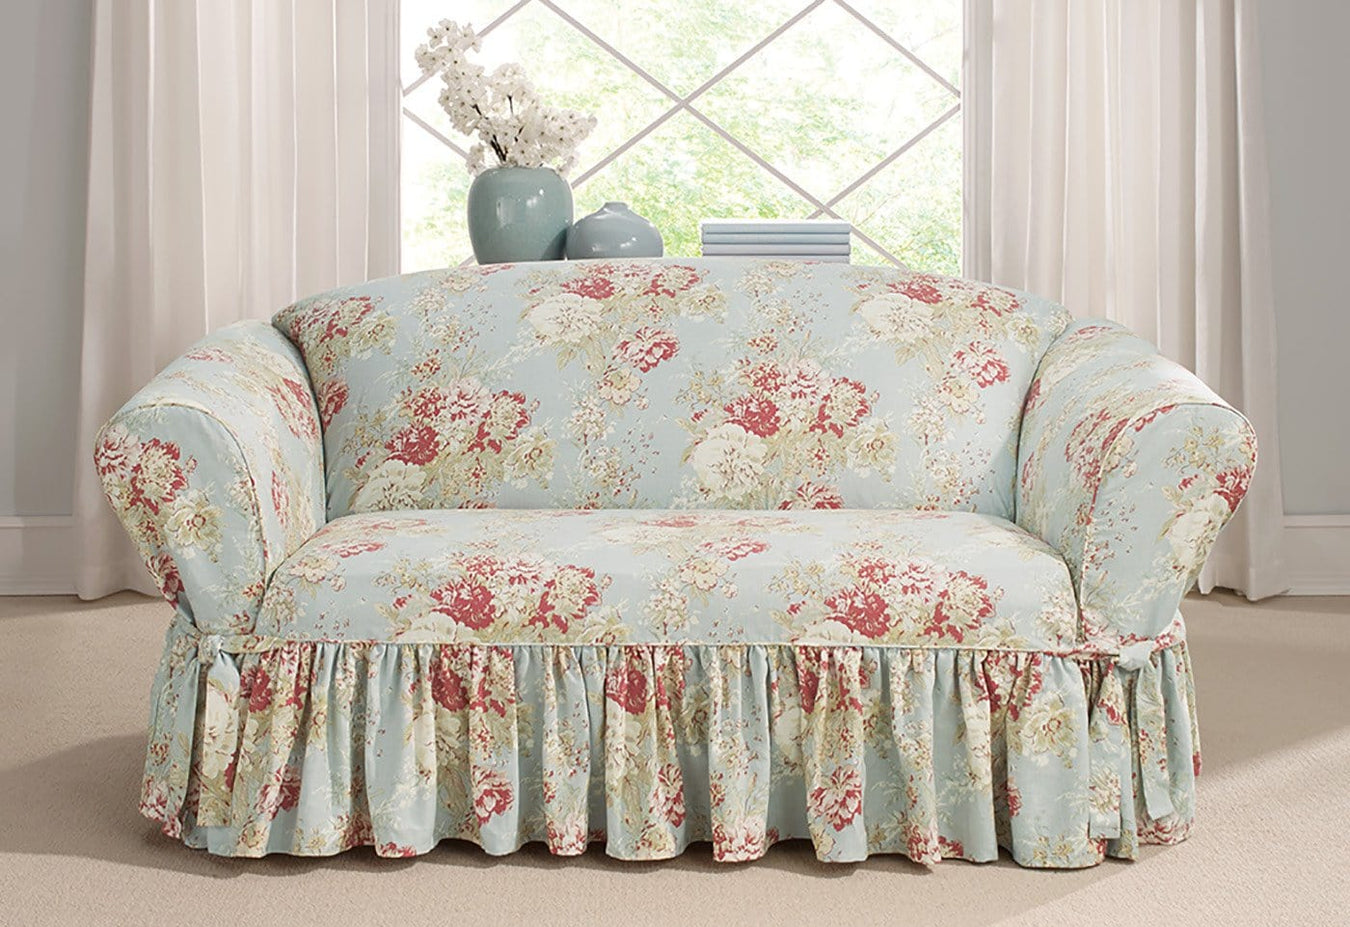 Enjoyable Ballad Bouquet By Waverly One Piece Loveseat Slipcover Andrewgaddart Wooden Chair Designs For Living Room Andrewgaddartcom